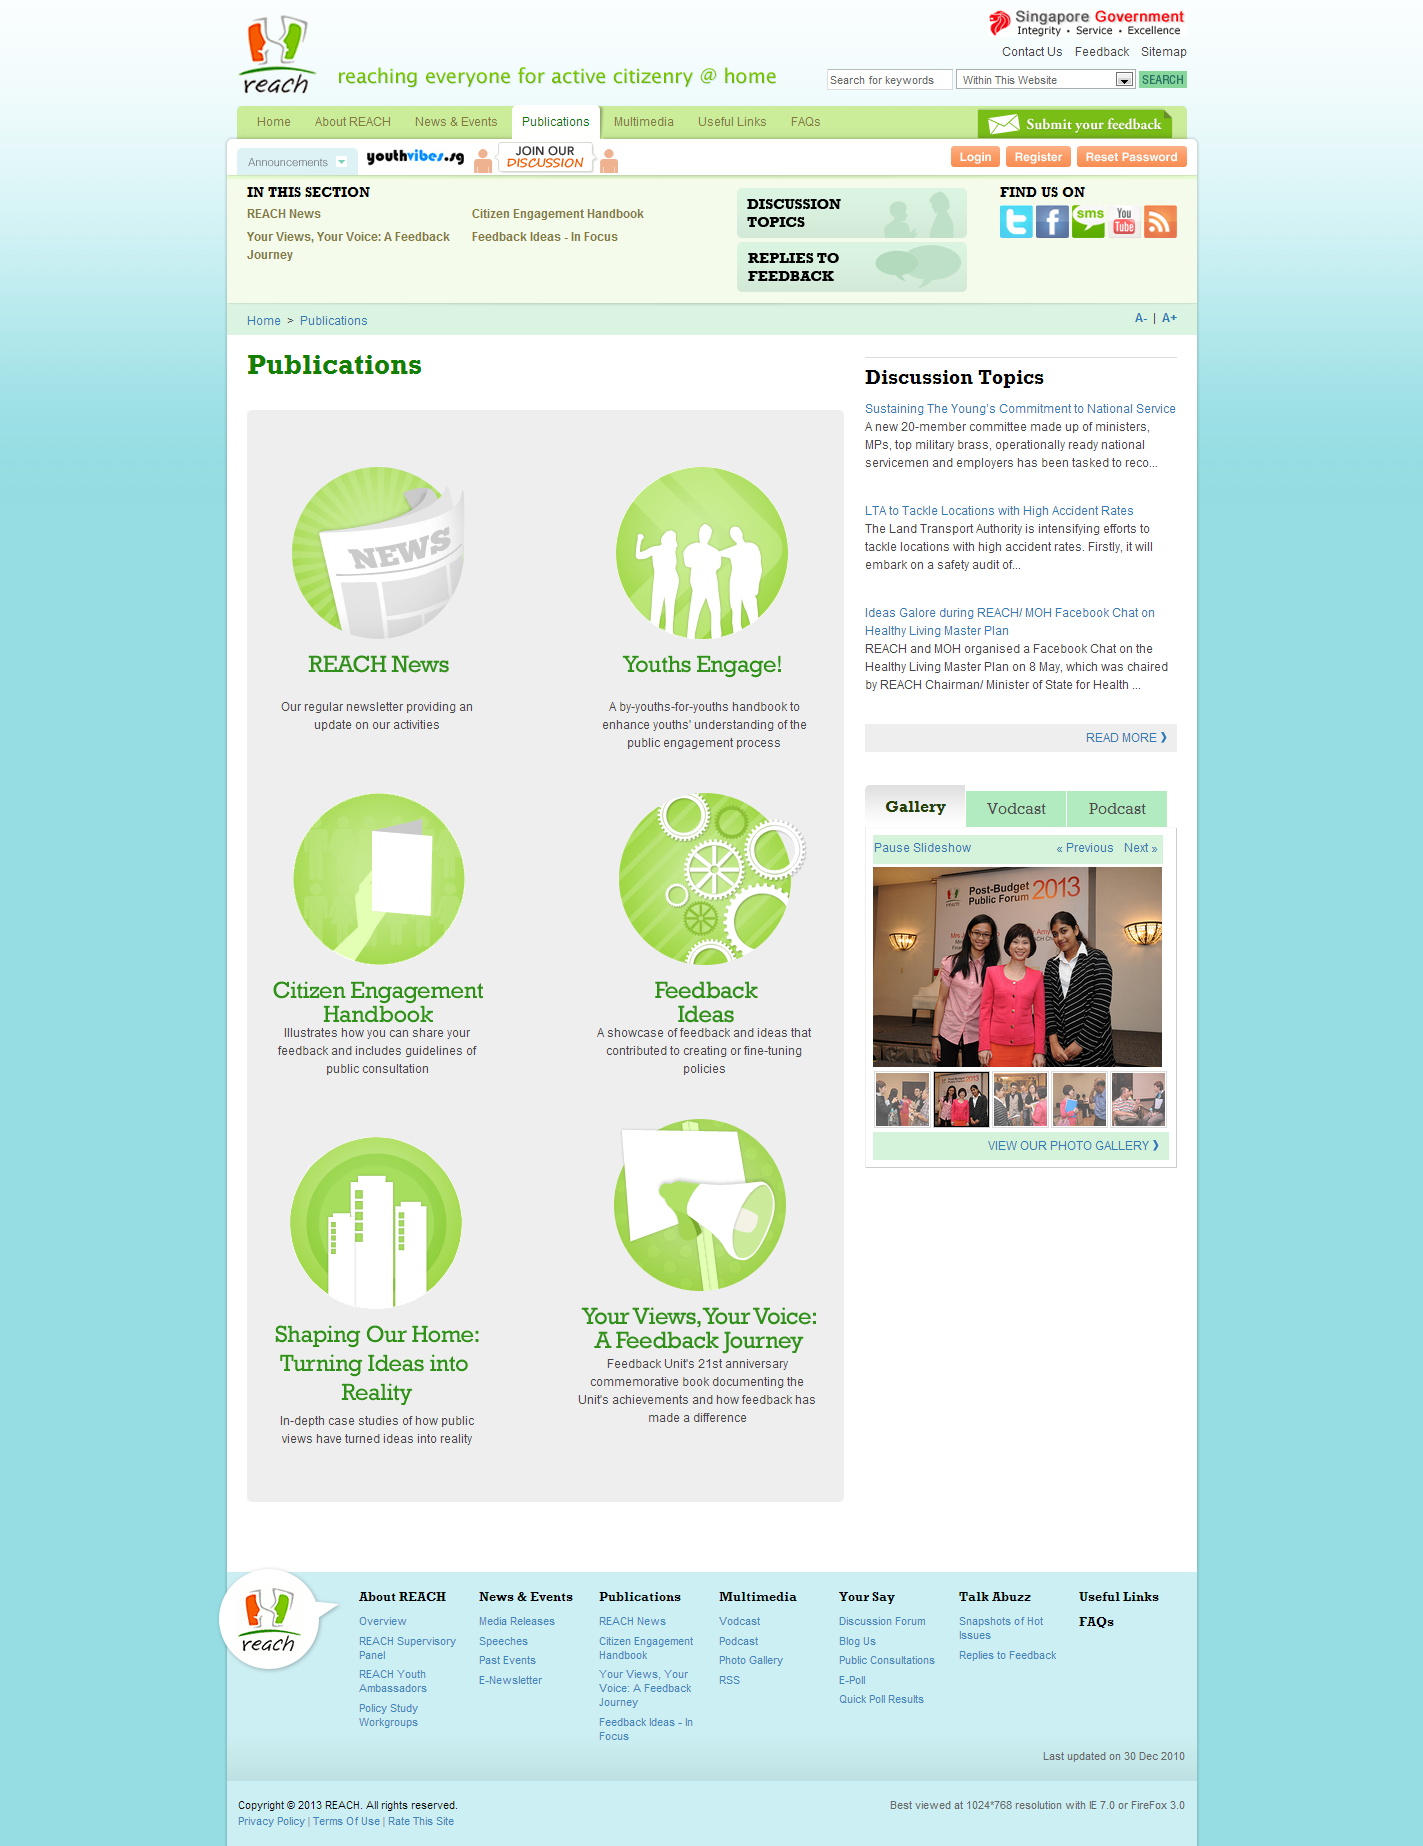 MCI - REACH Internet Outreach Portal Image 3